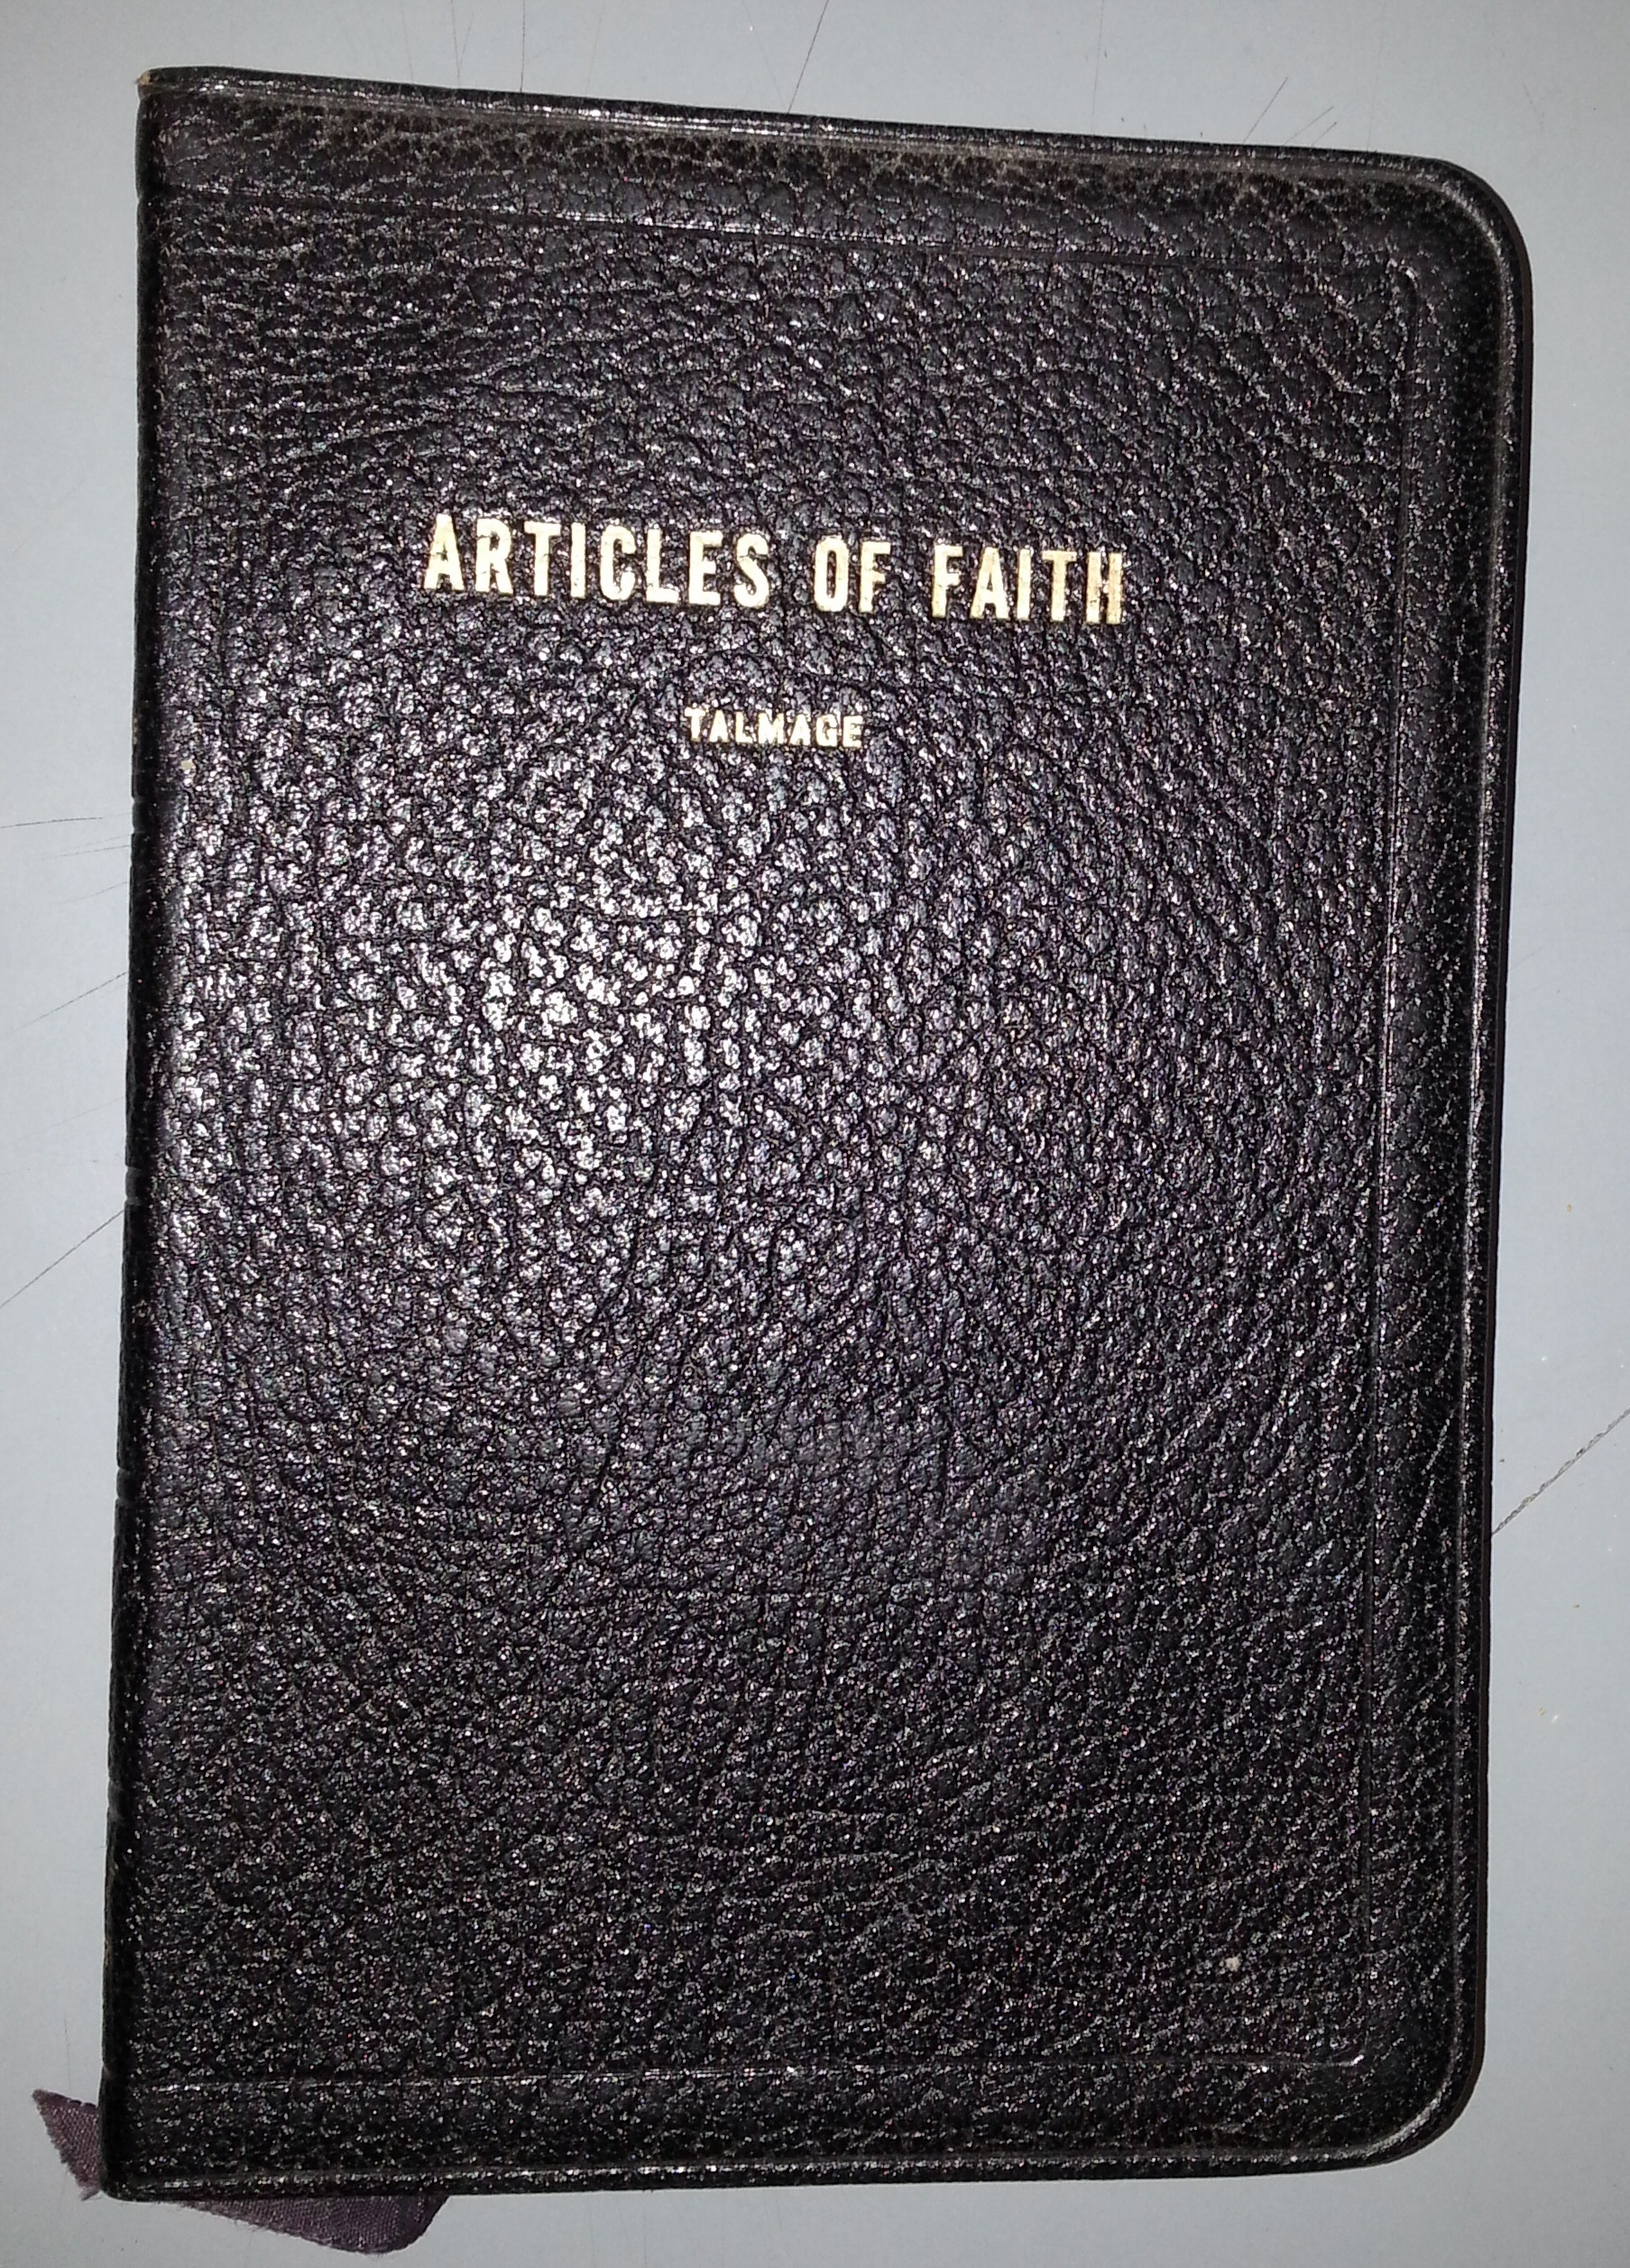 THE ARTICLES OF FAITH - LEATHER -, Talmage, Dr. James E.